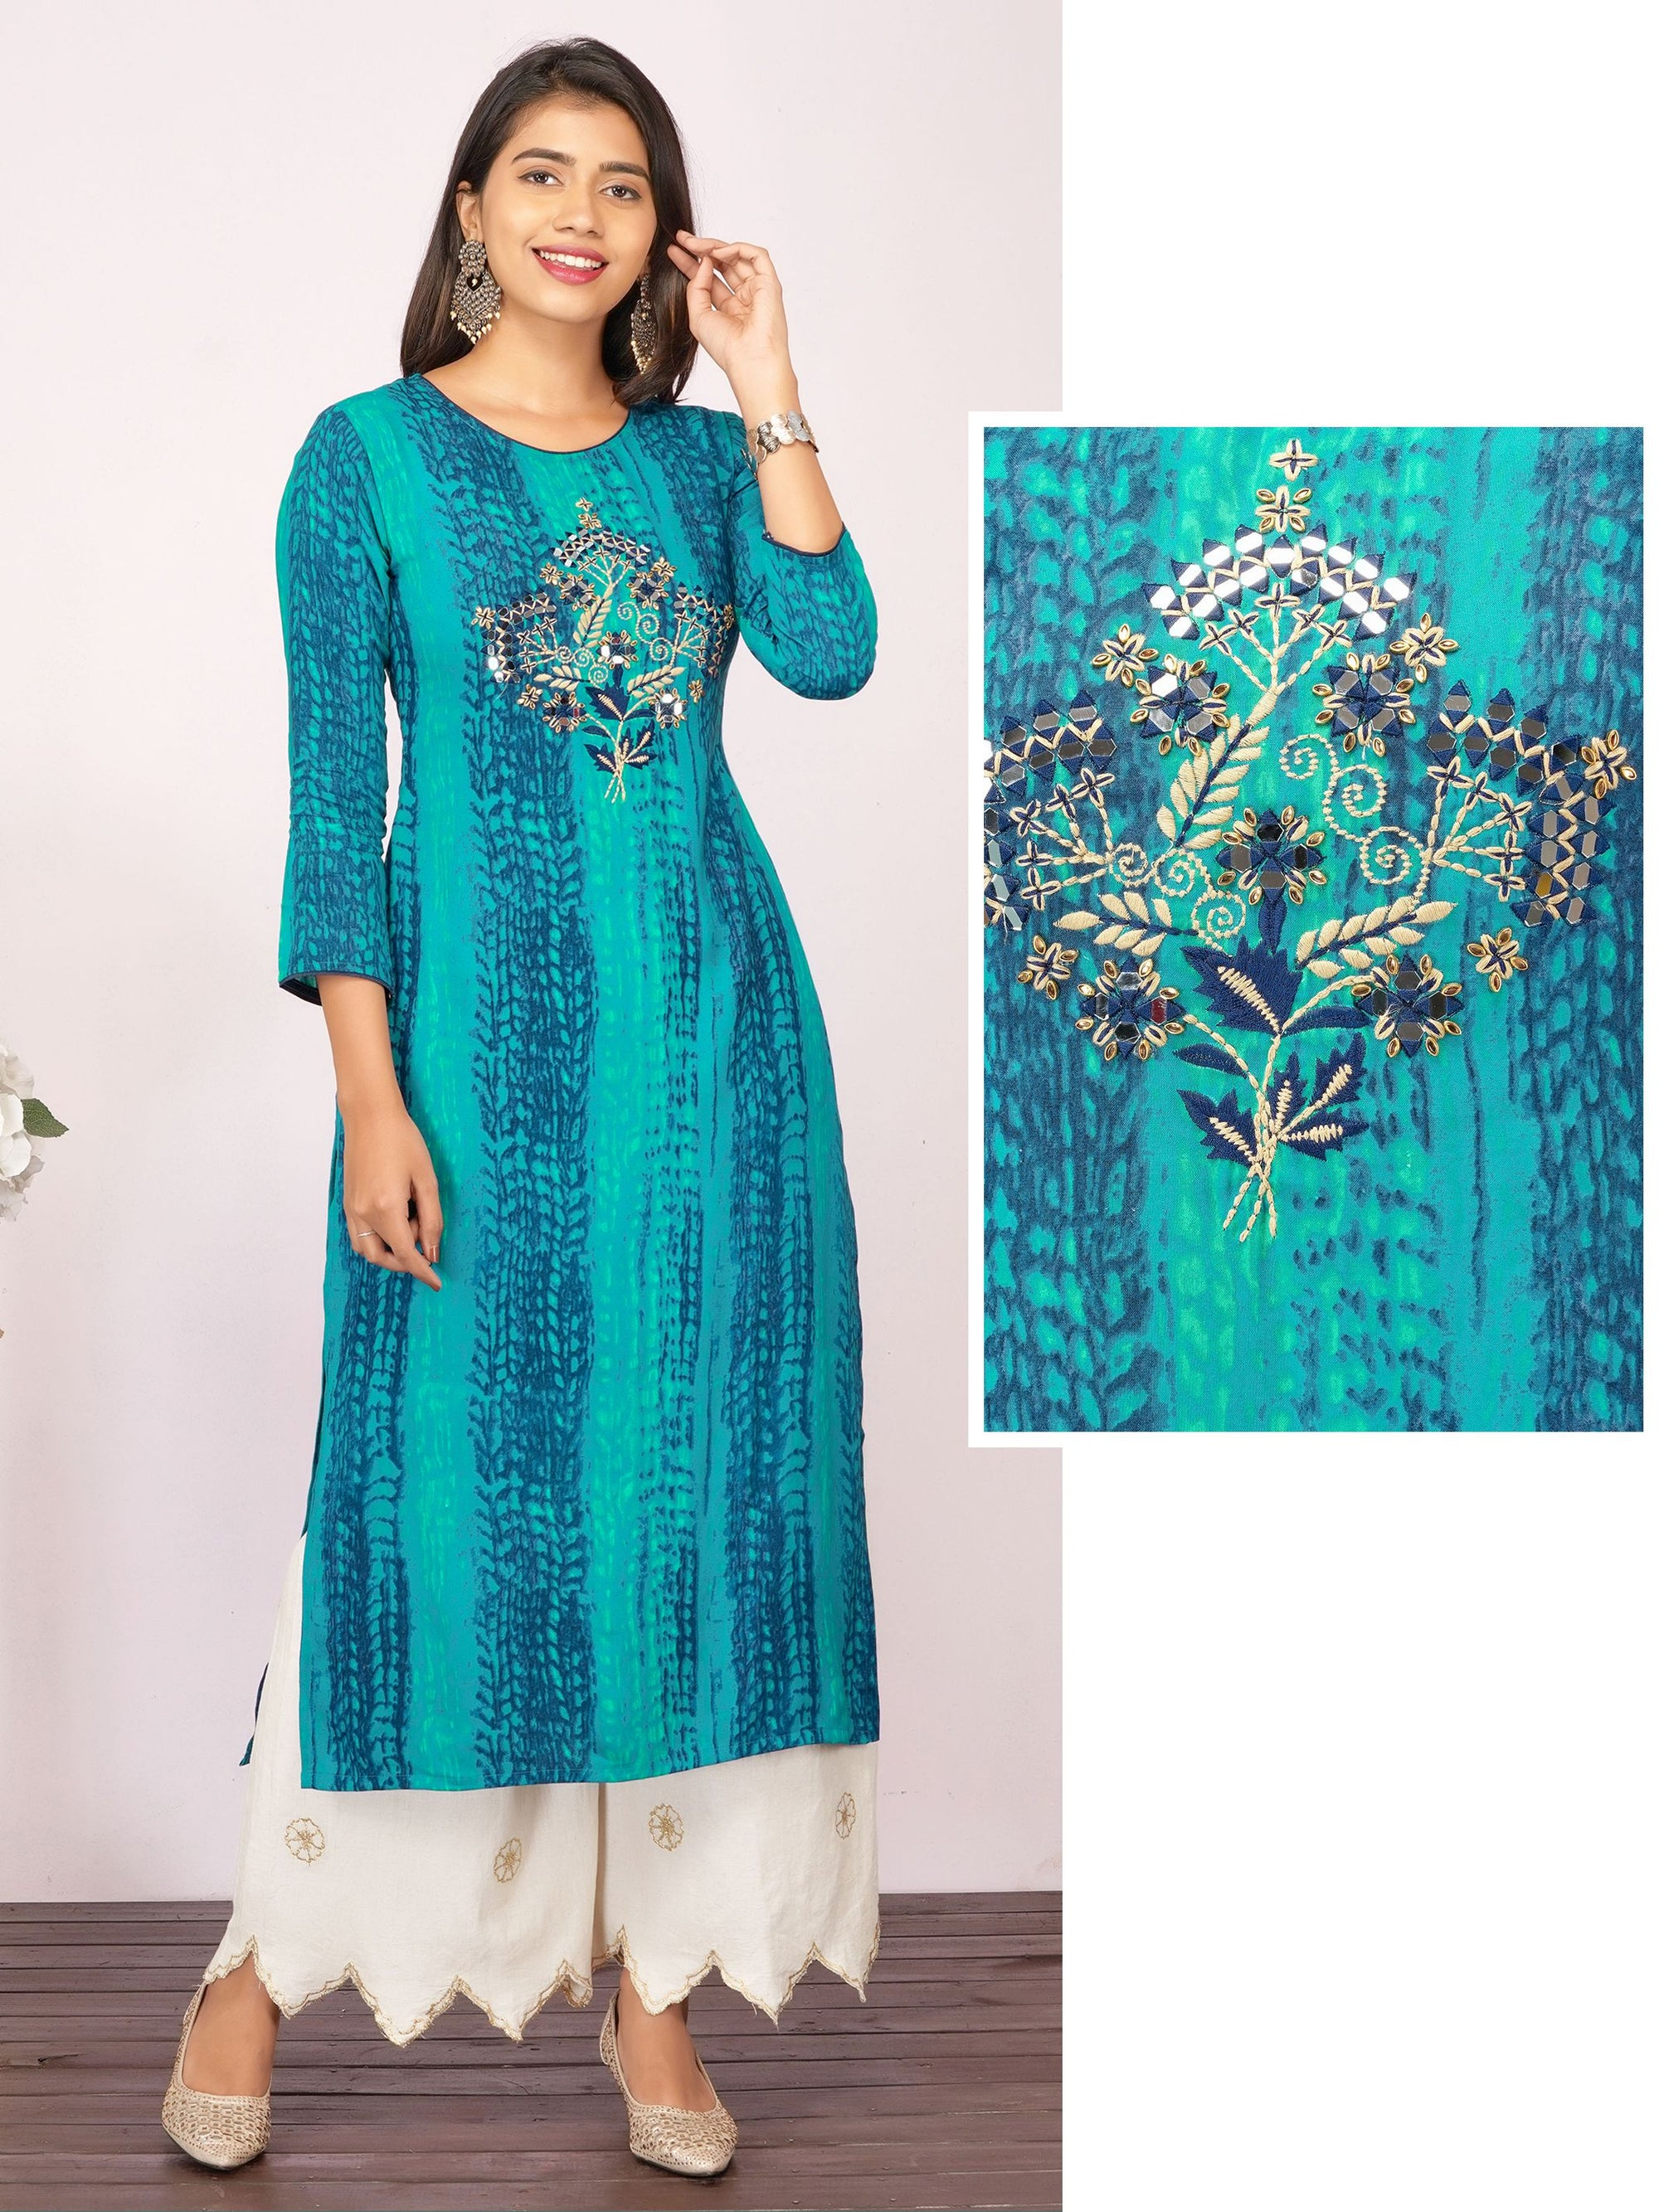 Floral Mirror Embroidered & Shibori Printed Rayon Kurti – Peacock Blue